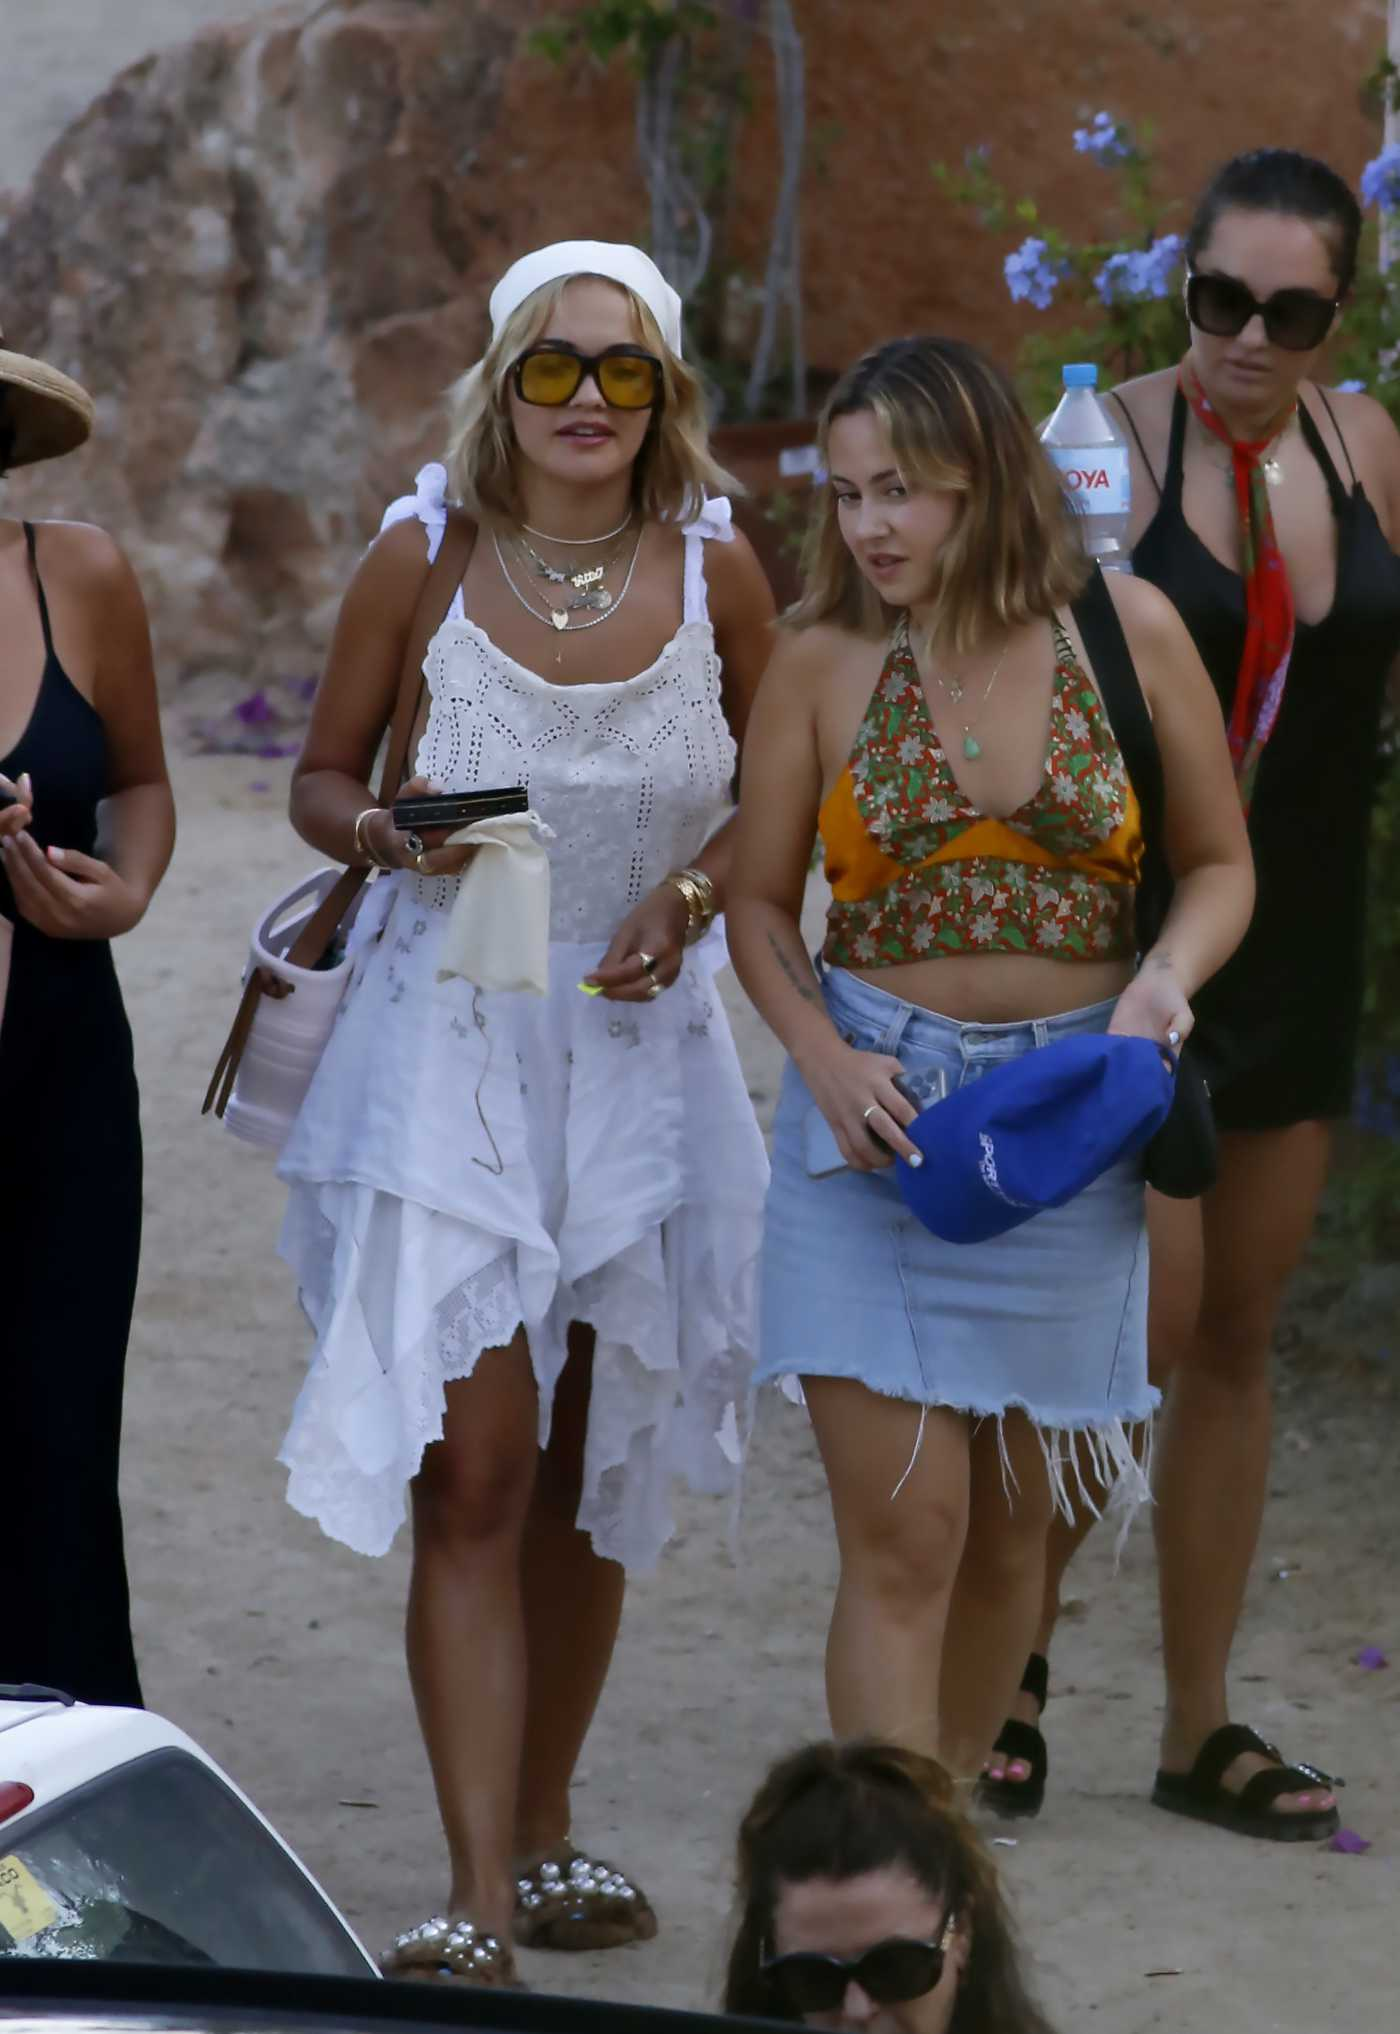 Rita Ora in a Short White Summer Dress Leaves the Ses Boques Restaurant in Ibiza 08/05/2020